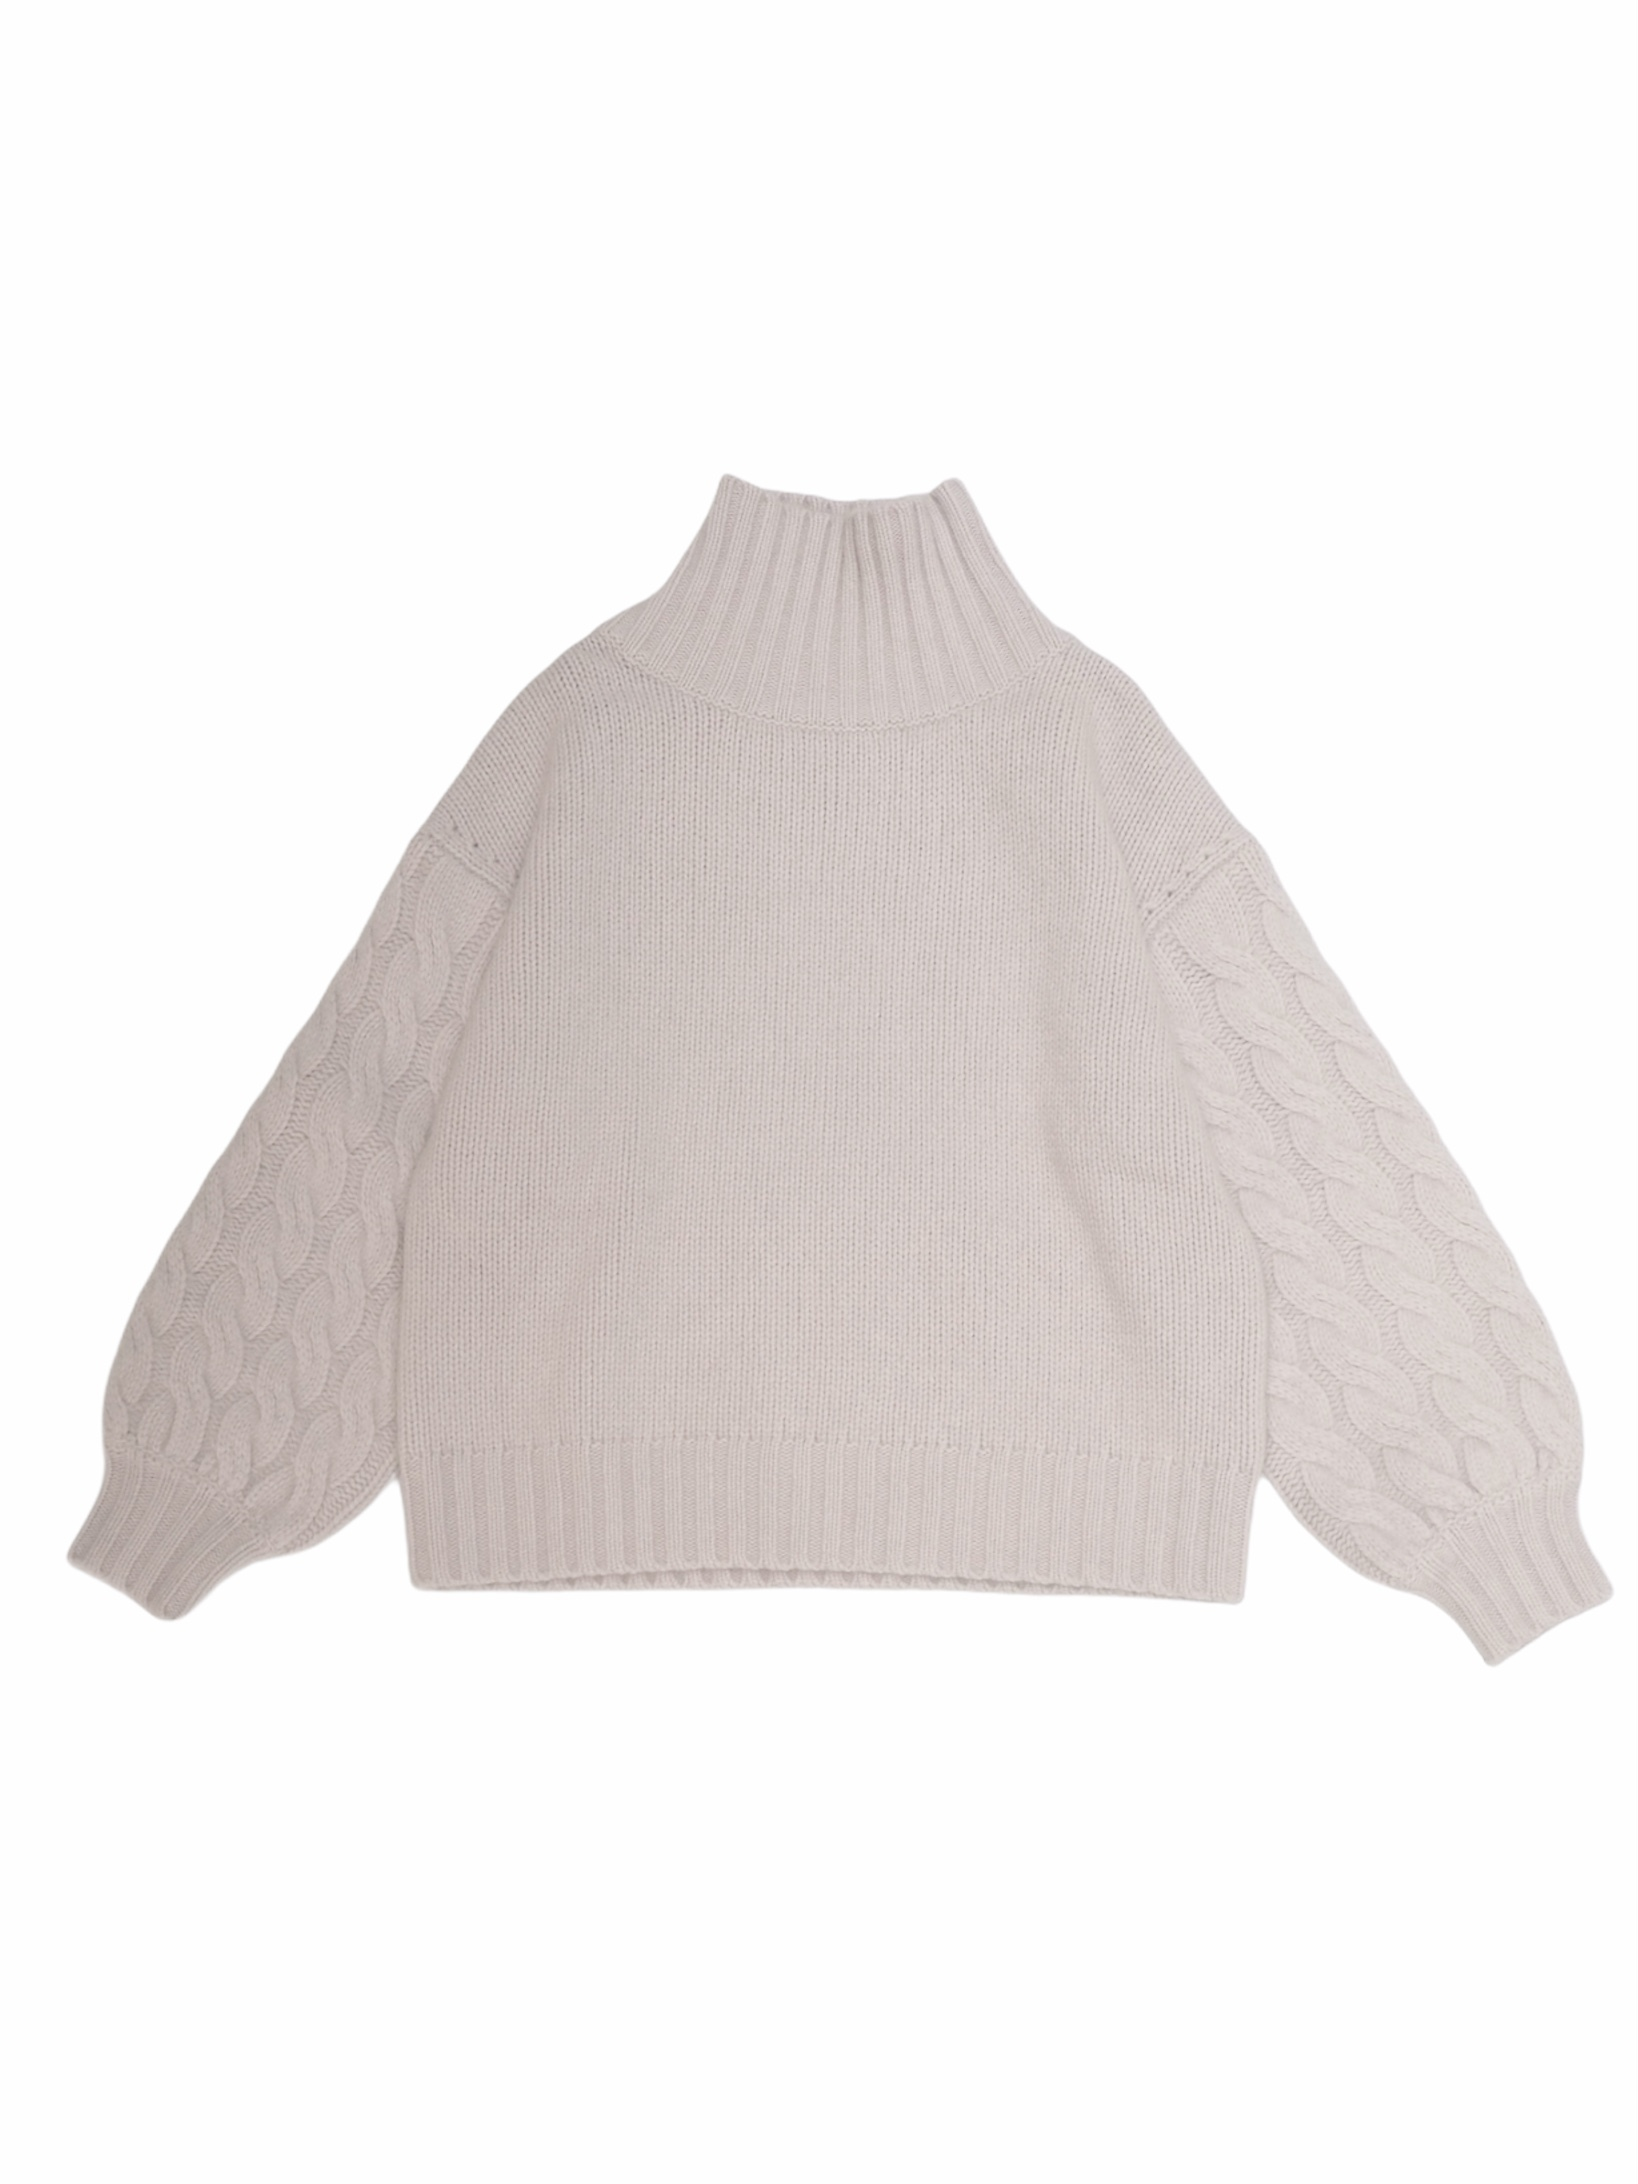 【LILLY LYNQUE】HIGH NECK KNIT